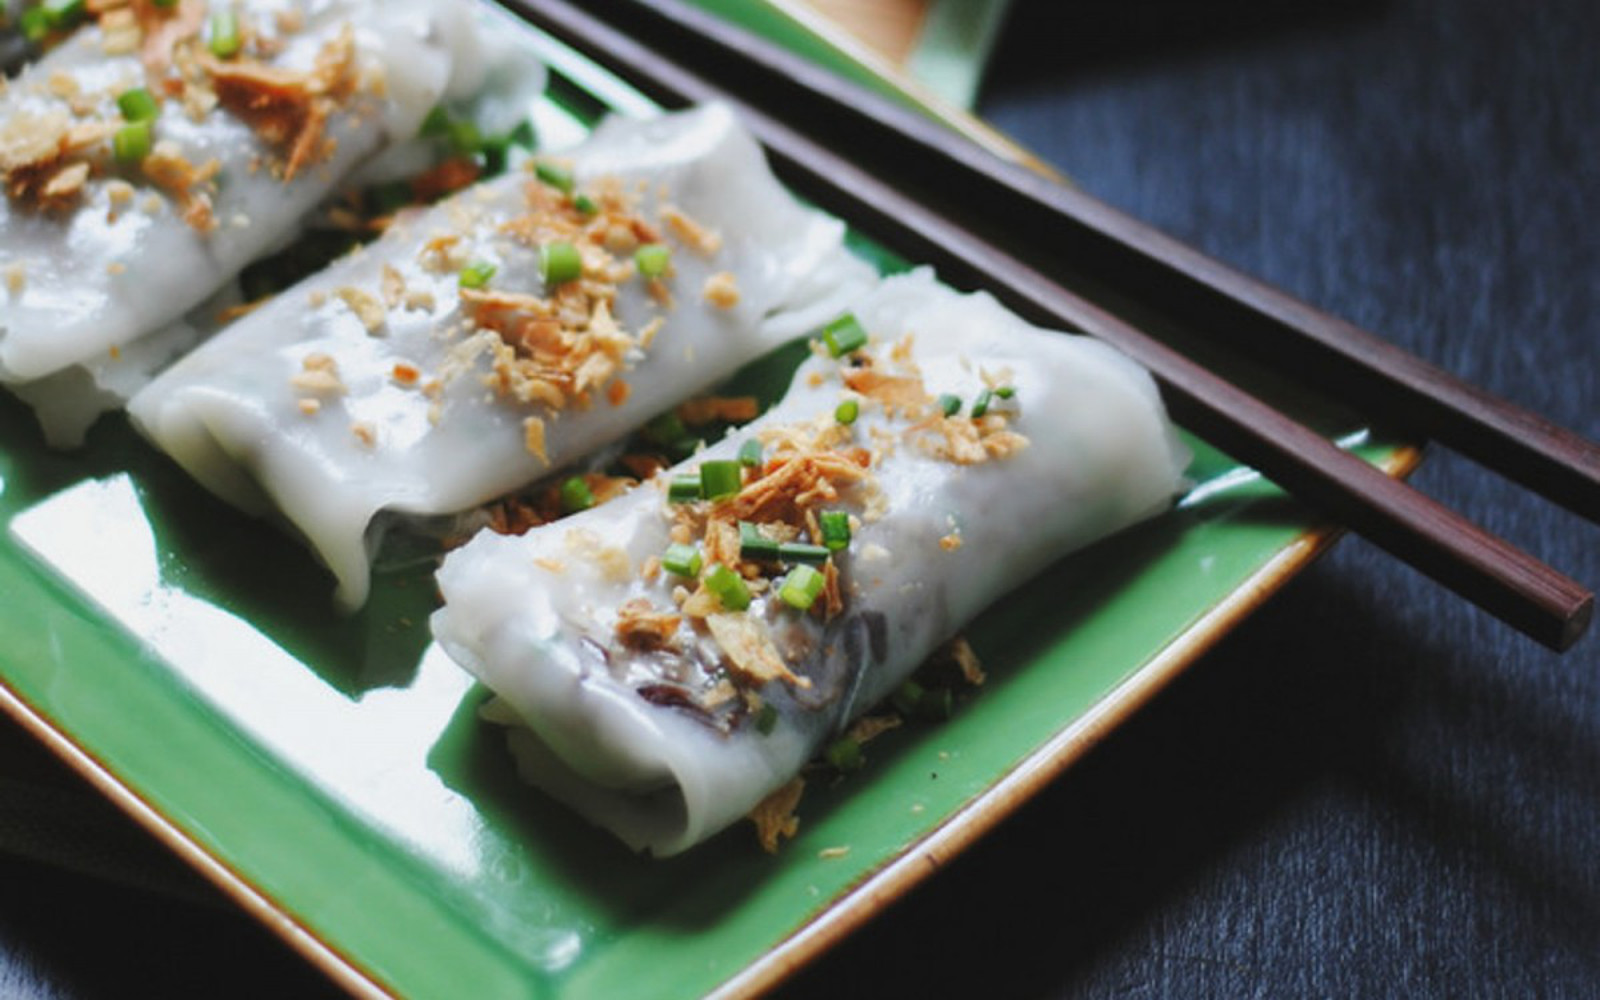 Banh Cuon Chay: Vietnamese Steamed Rolled Cakes With a Mushroom Filling